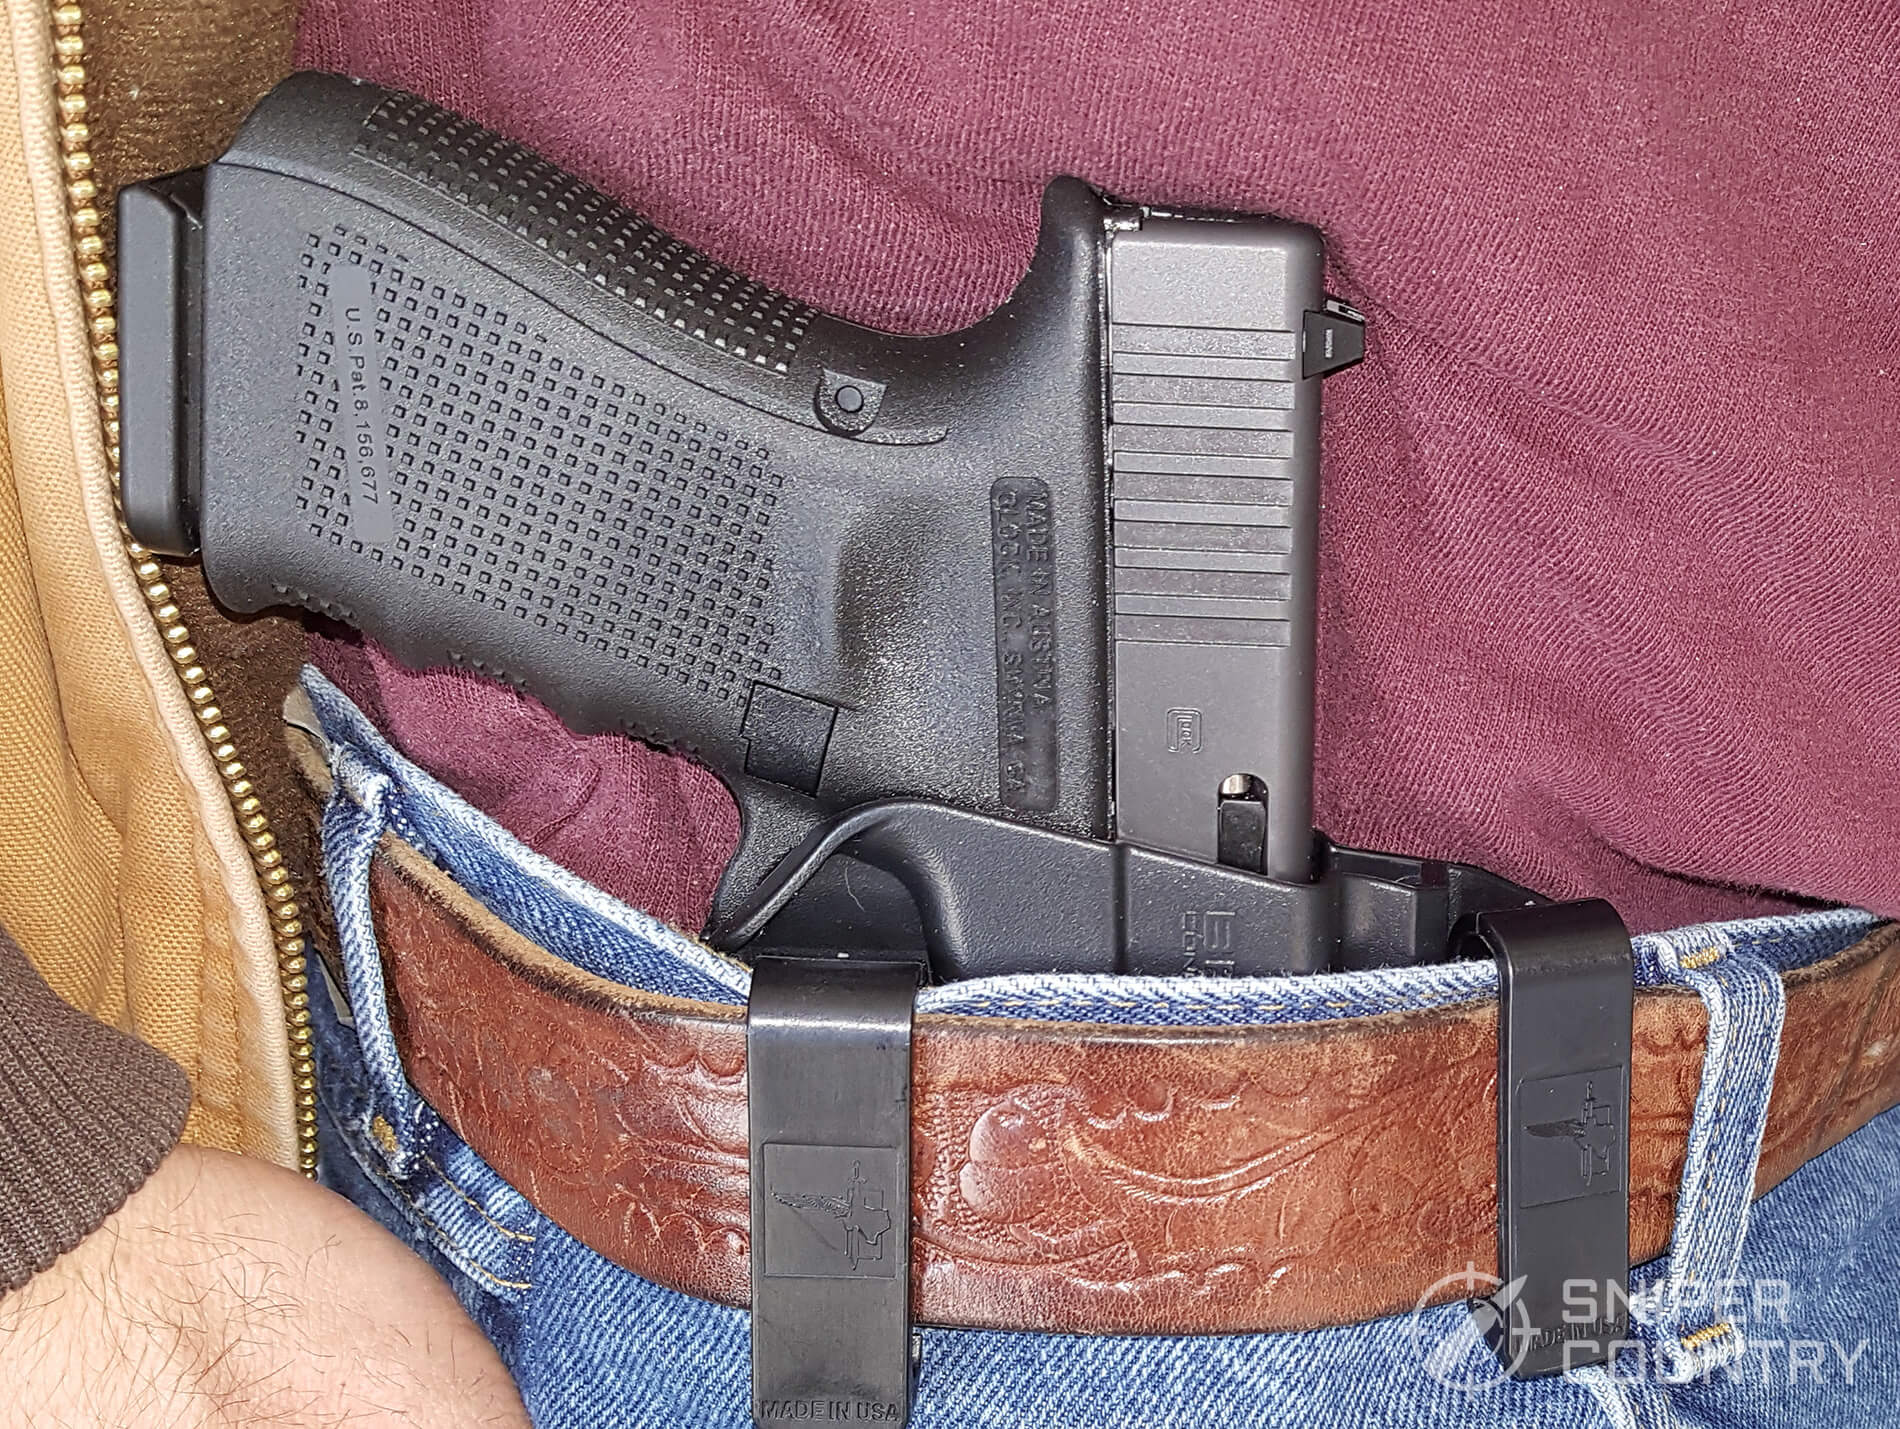 Bravo Concealment Torsion Holster 3.0 on belt